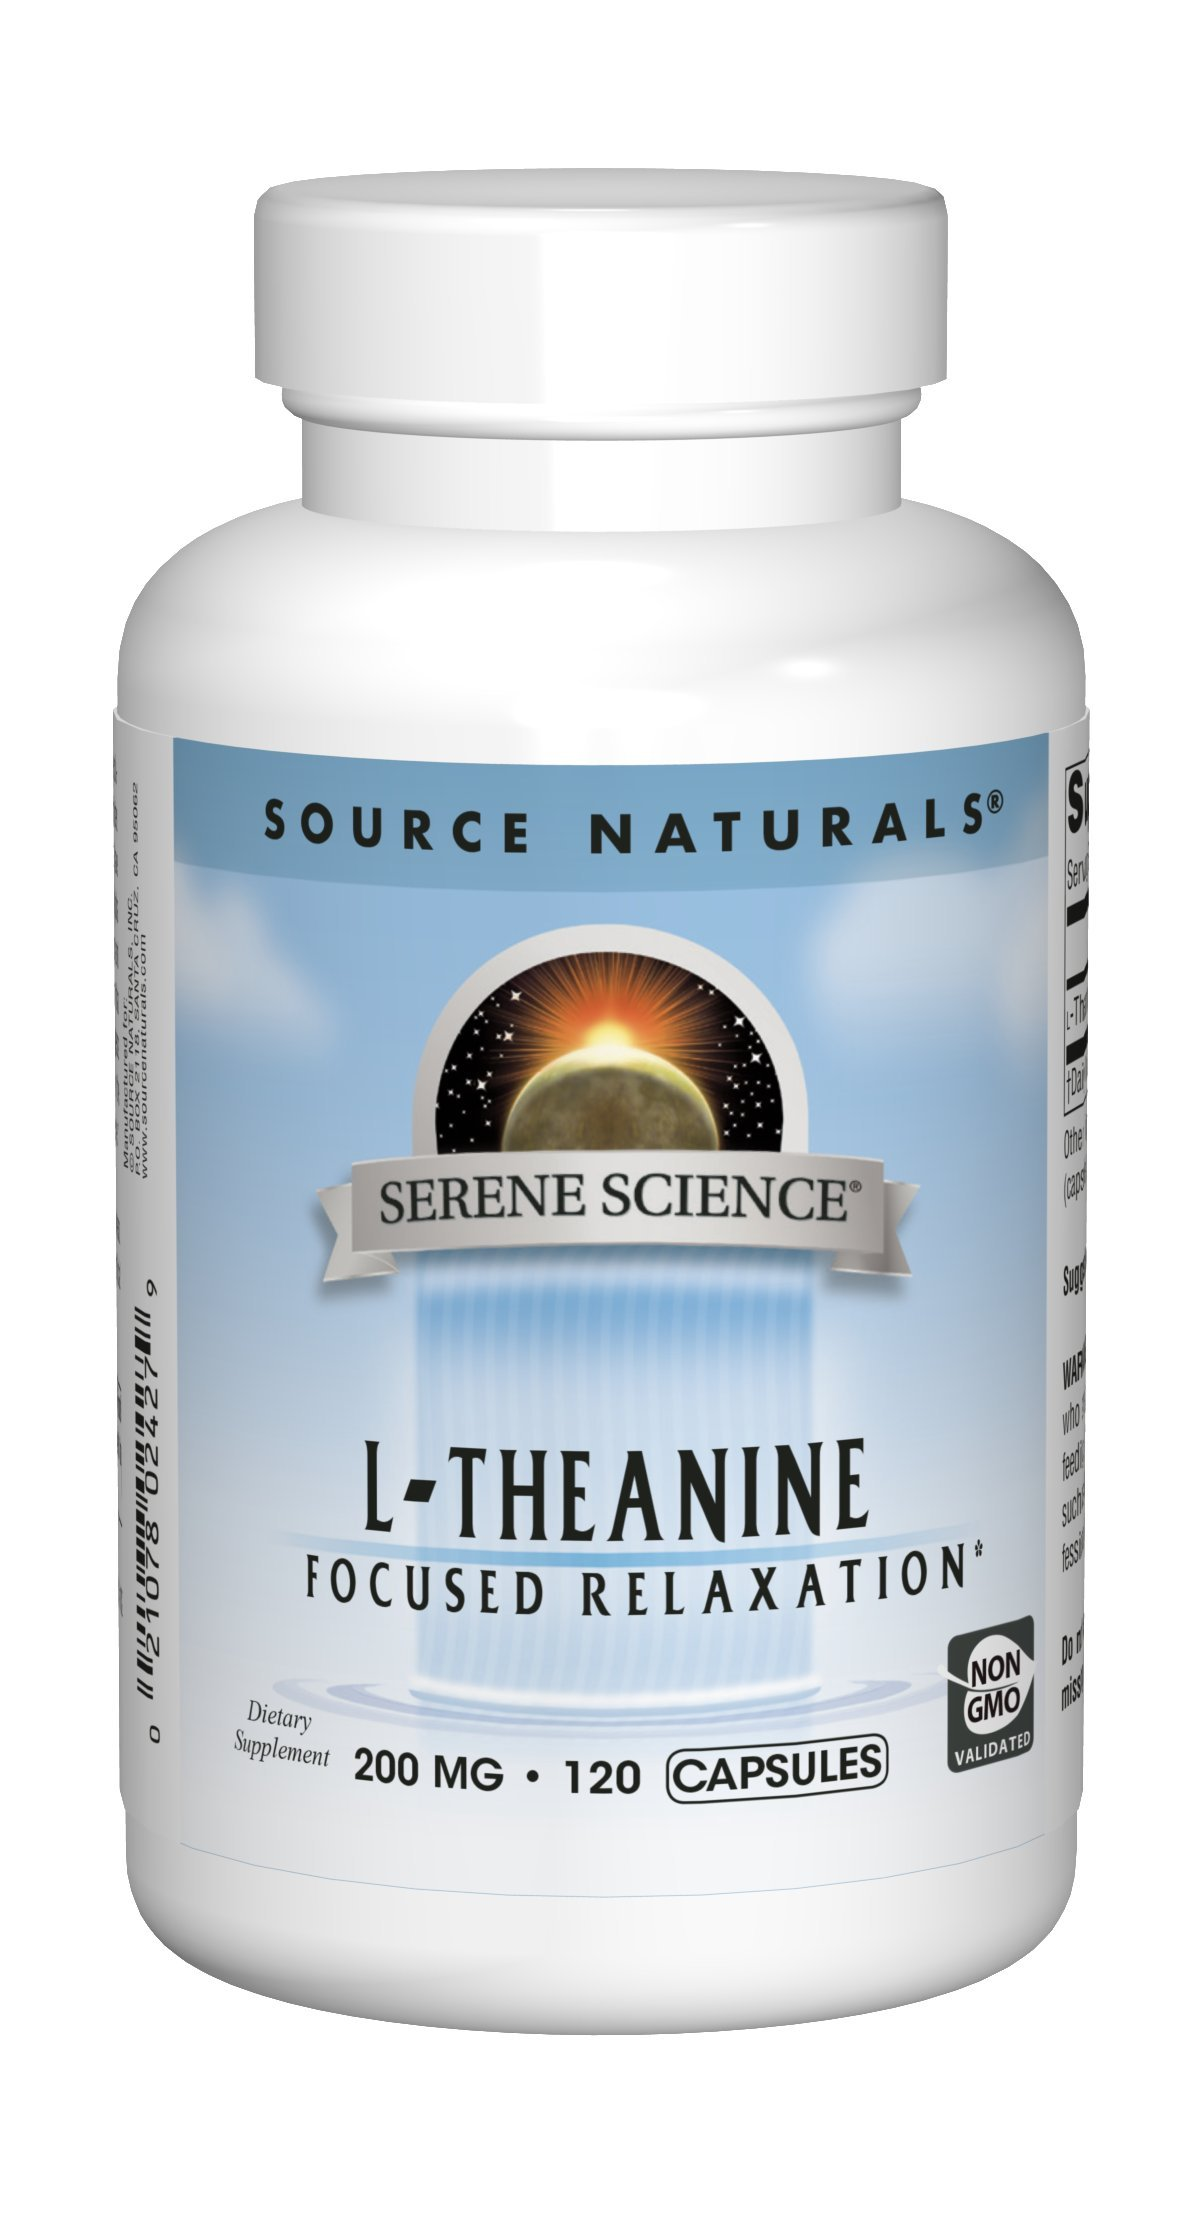 Source Naturals Serene Science L-Theanine 200mg Supplement - 120 Capsules